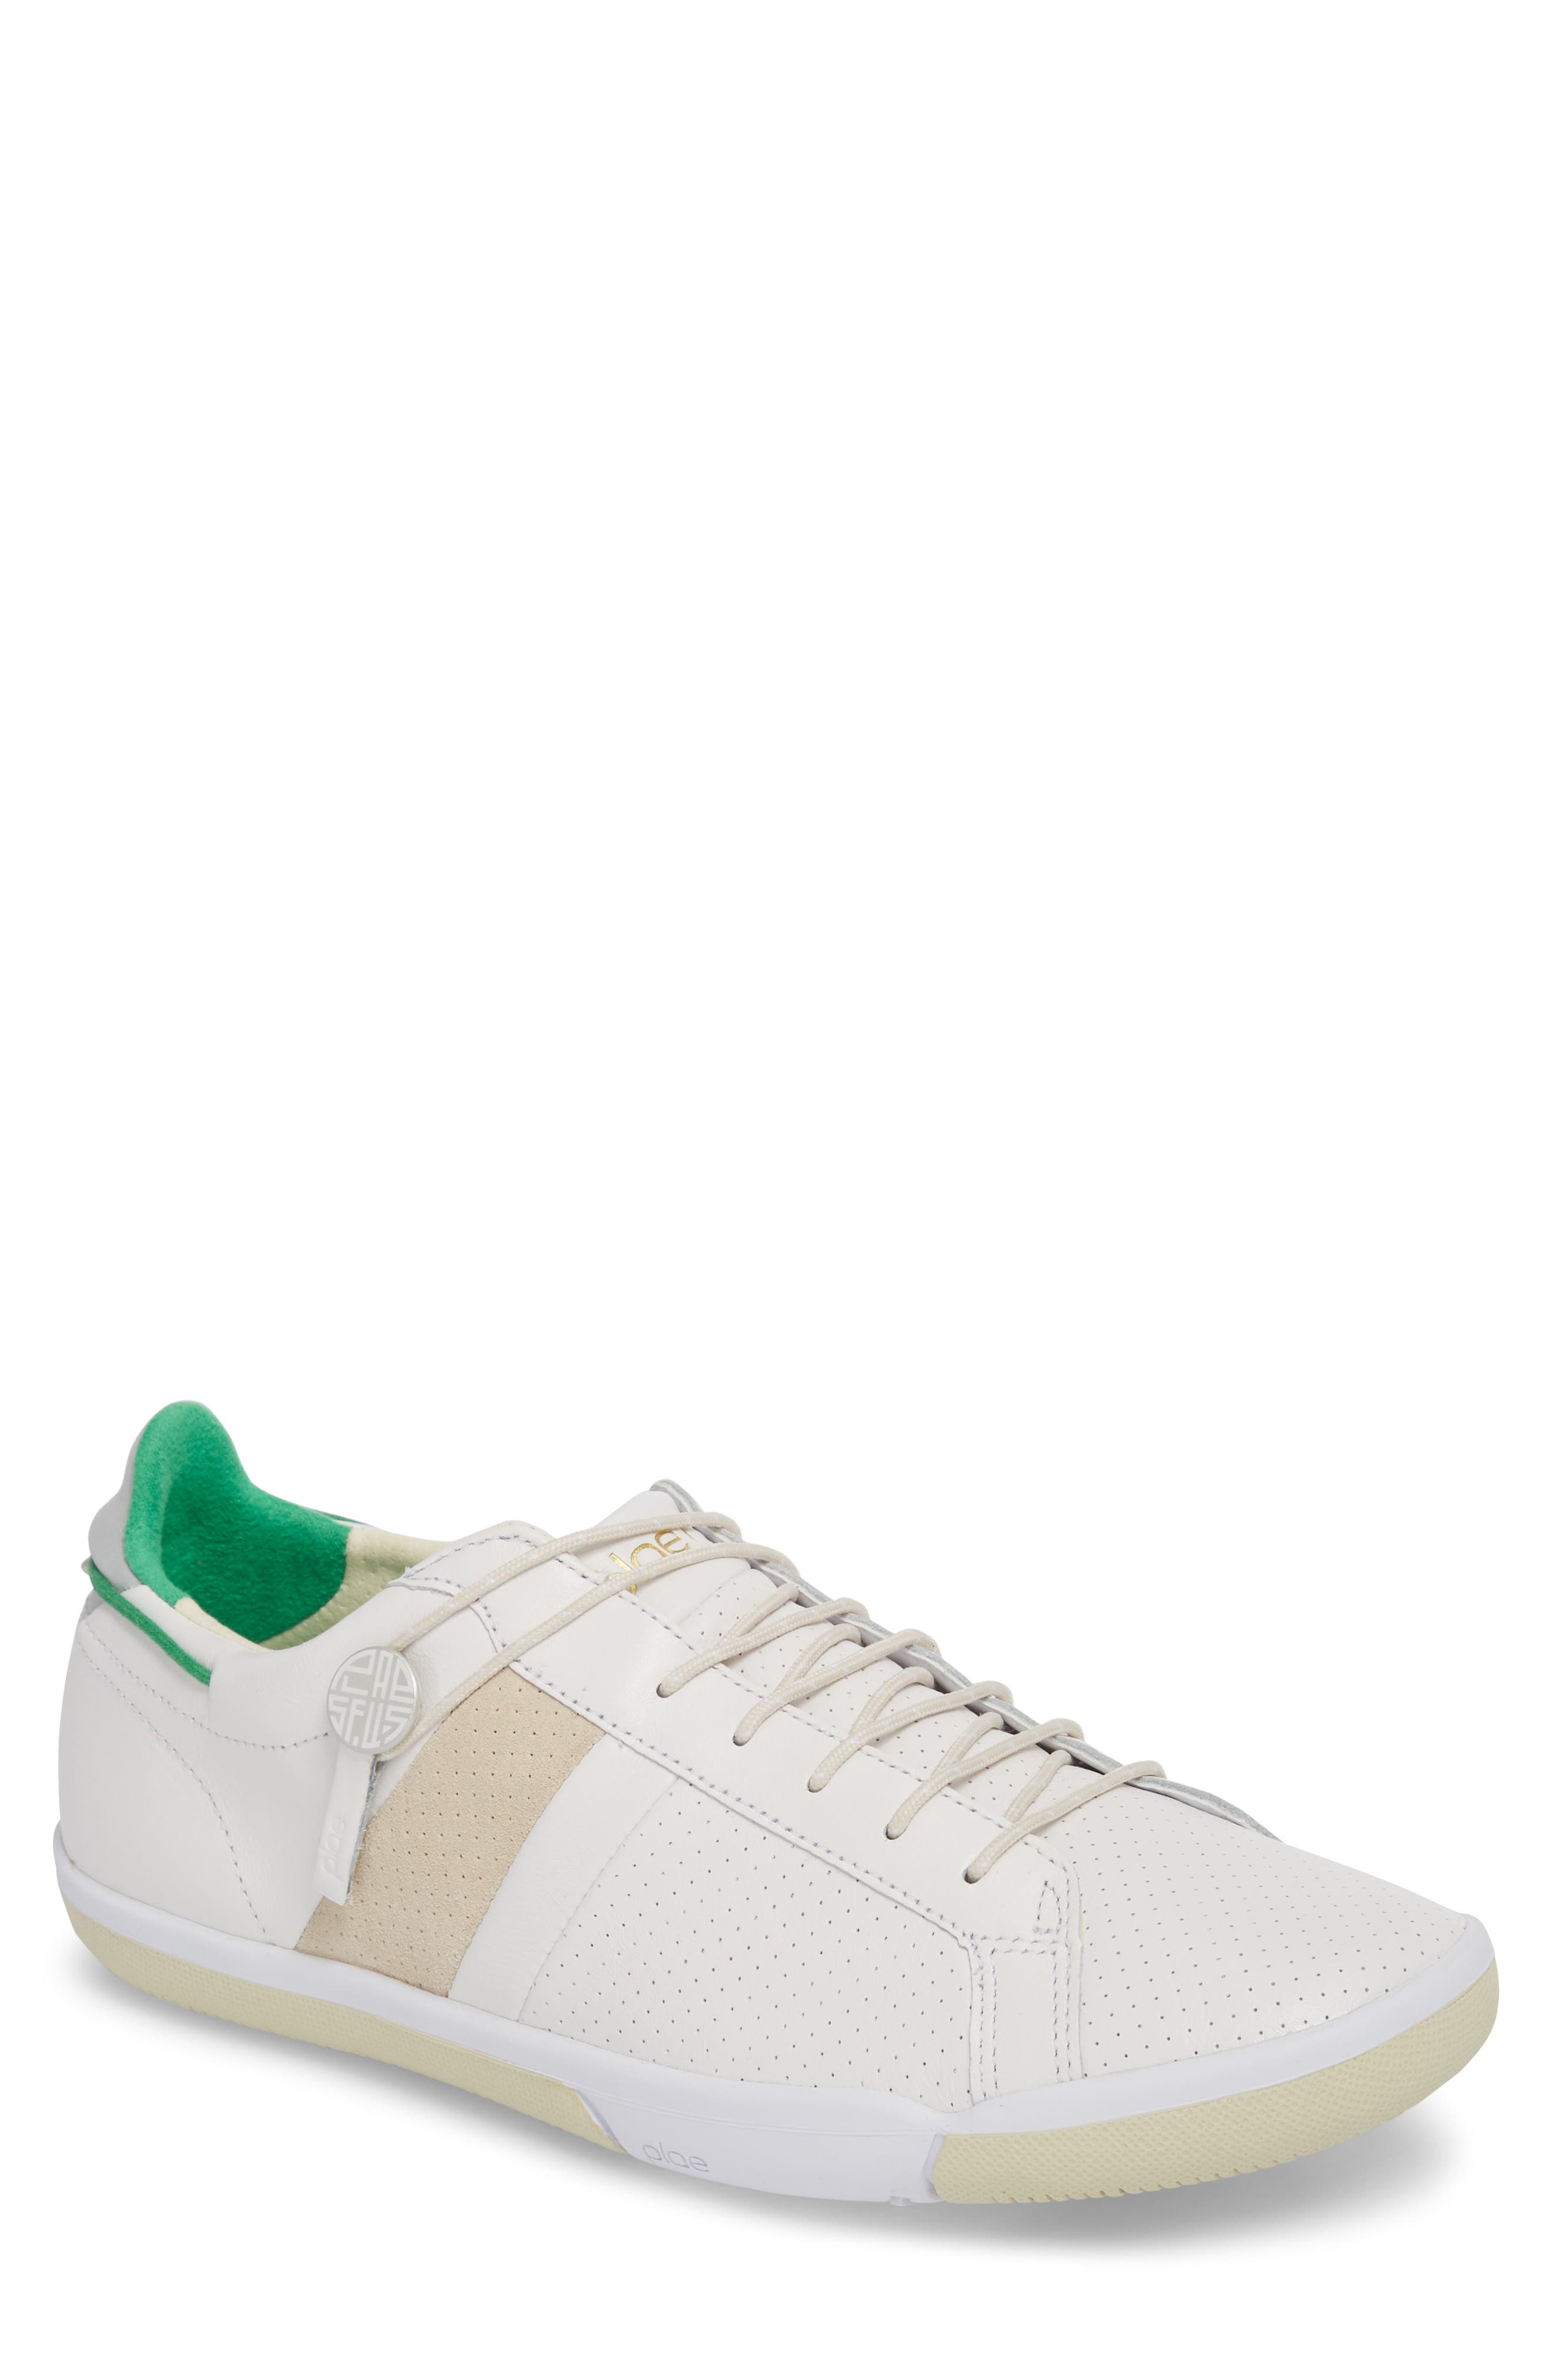 Mulberry Low Top Sneaker,                         Main,                         color, WHITE